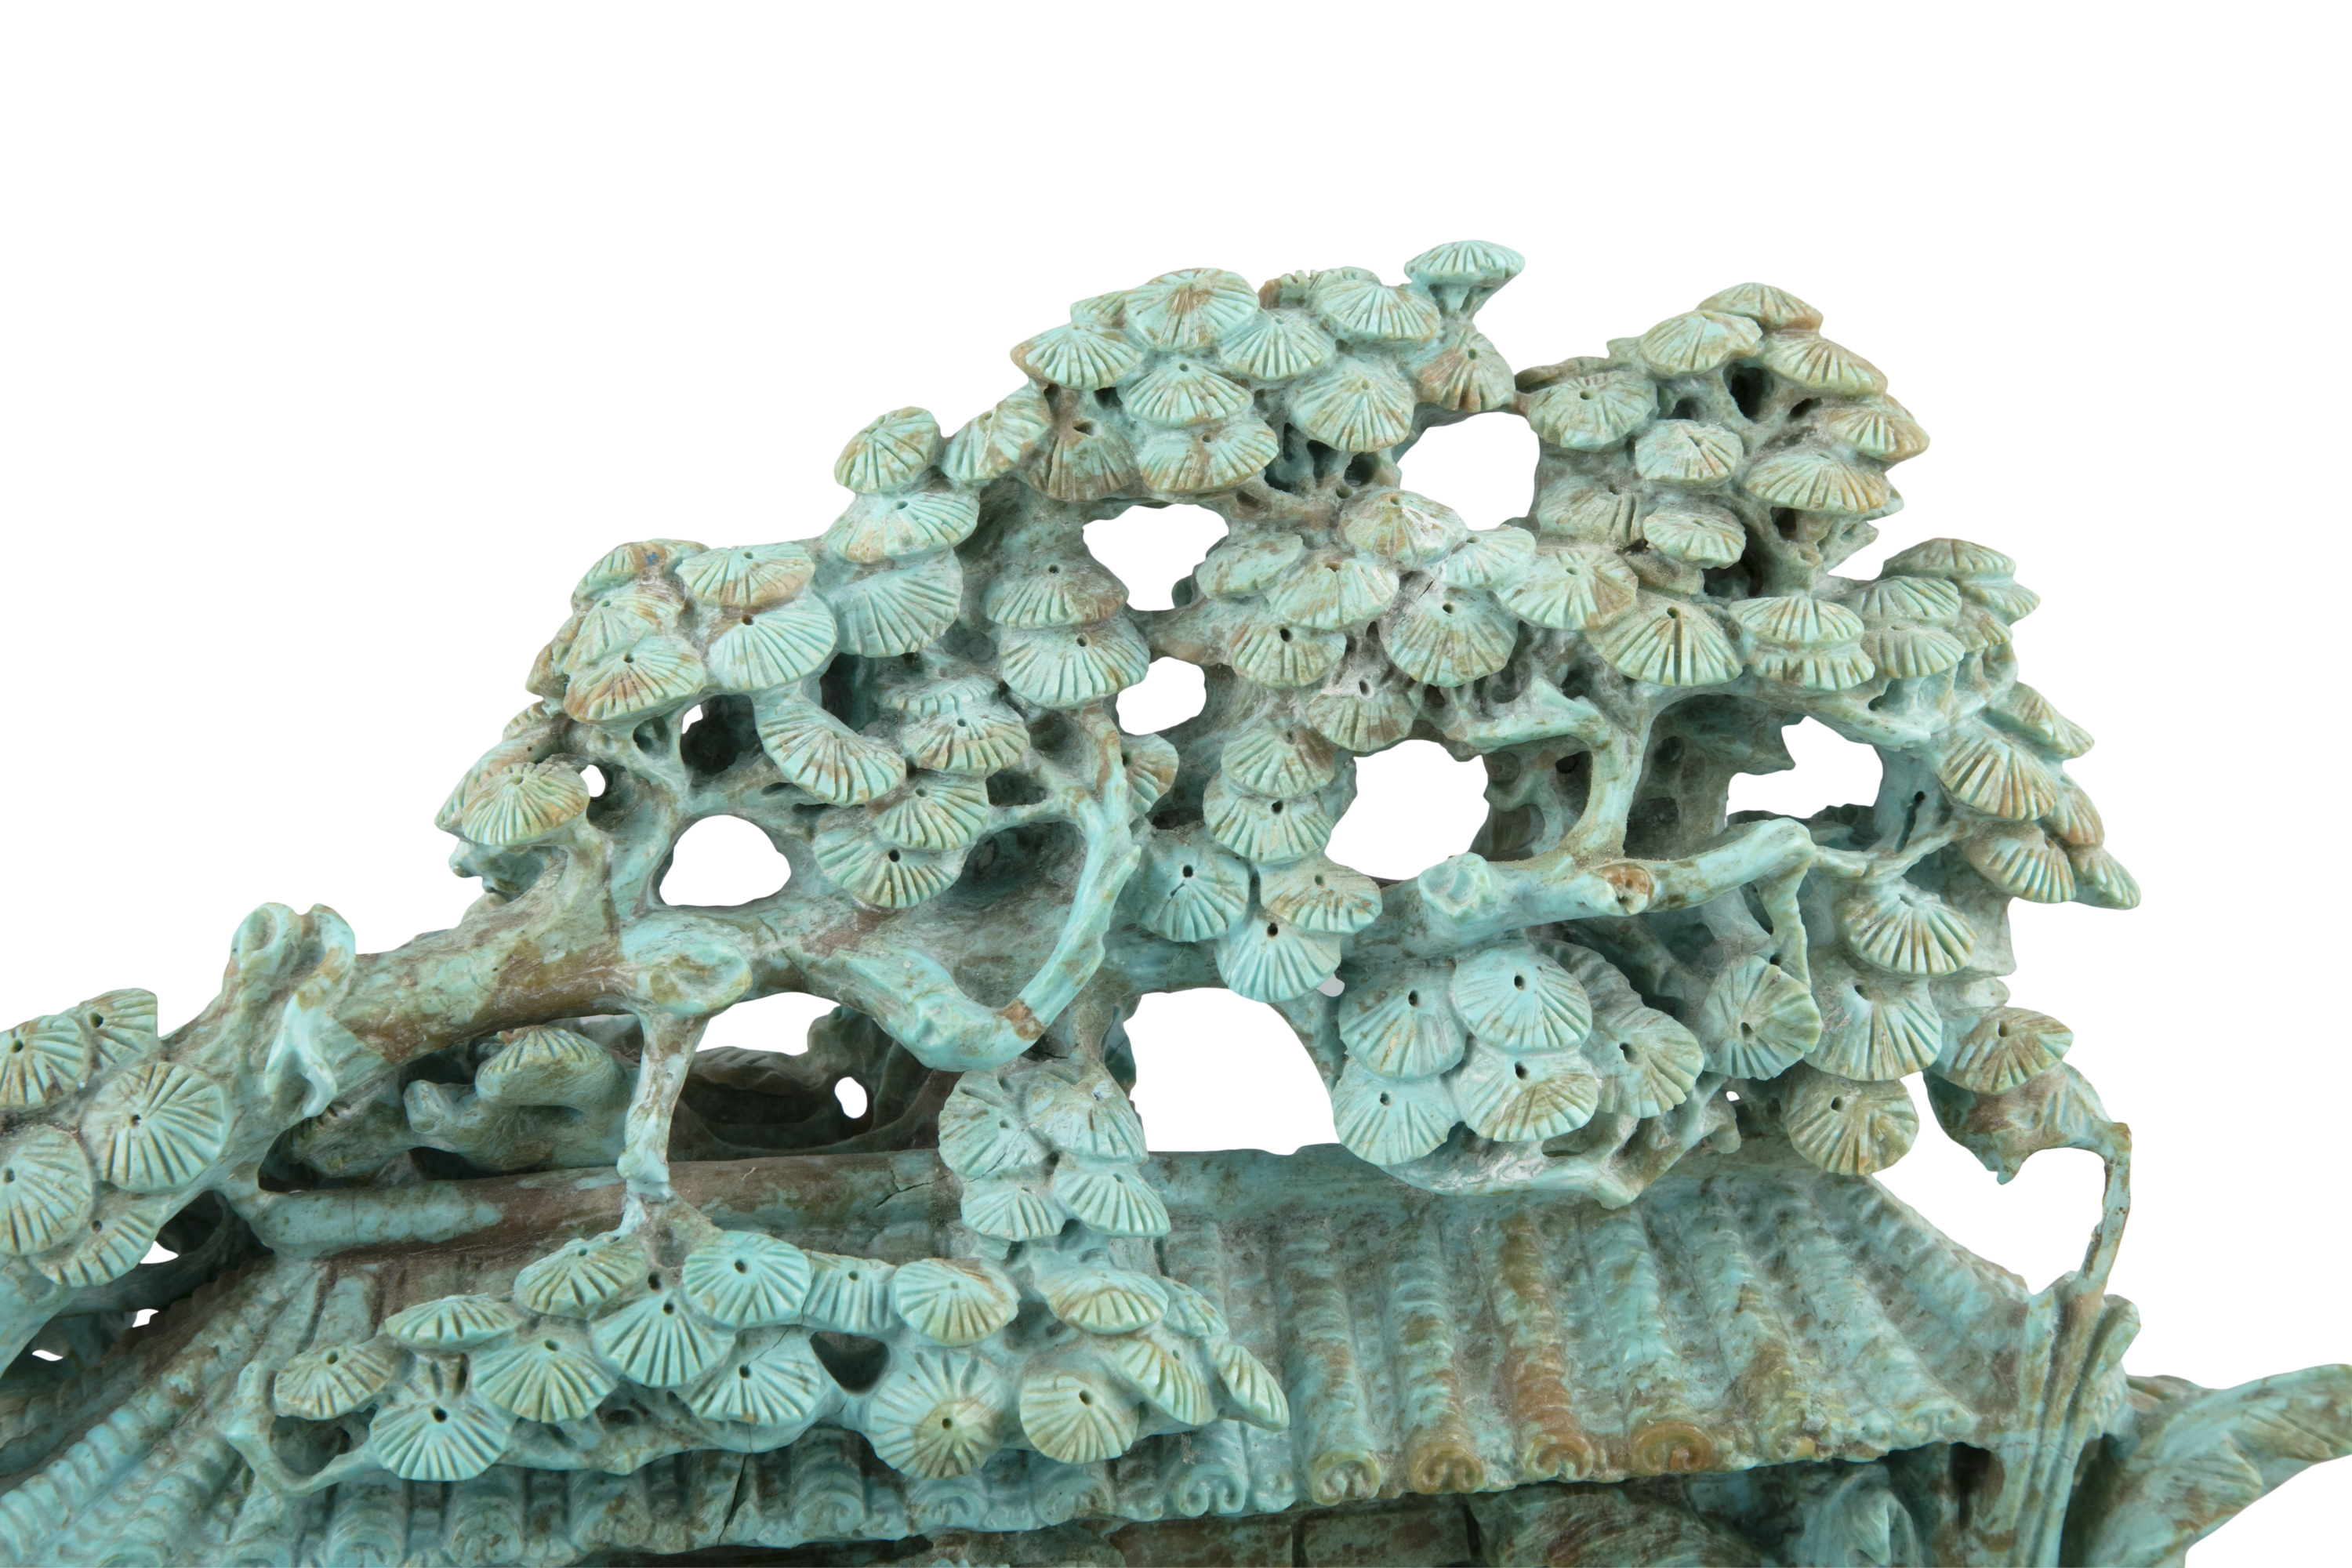 A LARGE AND UNUSUAL TURQUOISE MATRIX LANDSCAPE China, 20th century An important and large group - Image 13 of 22